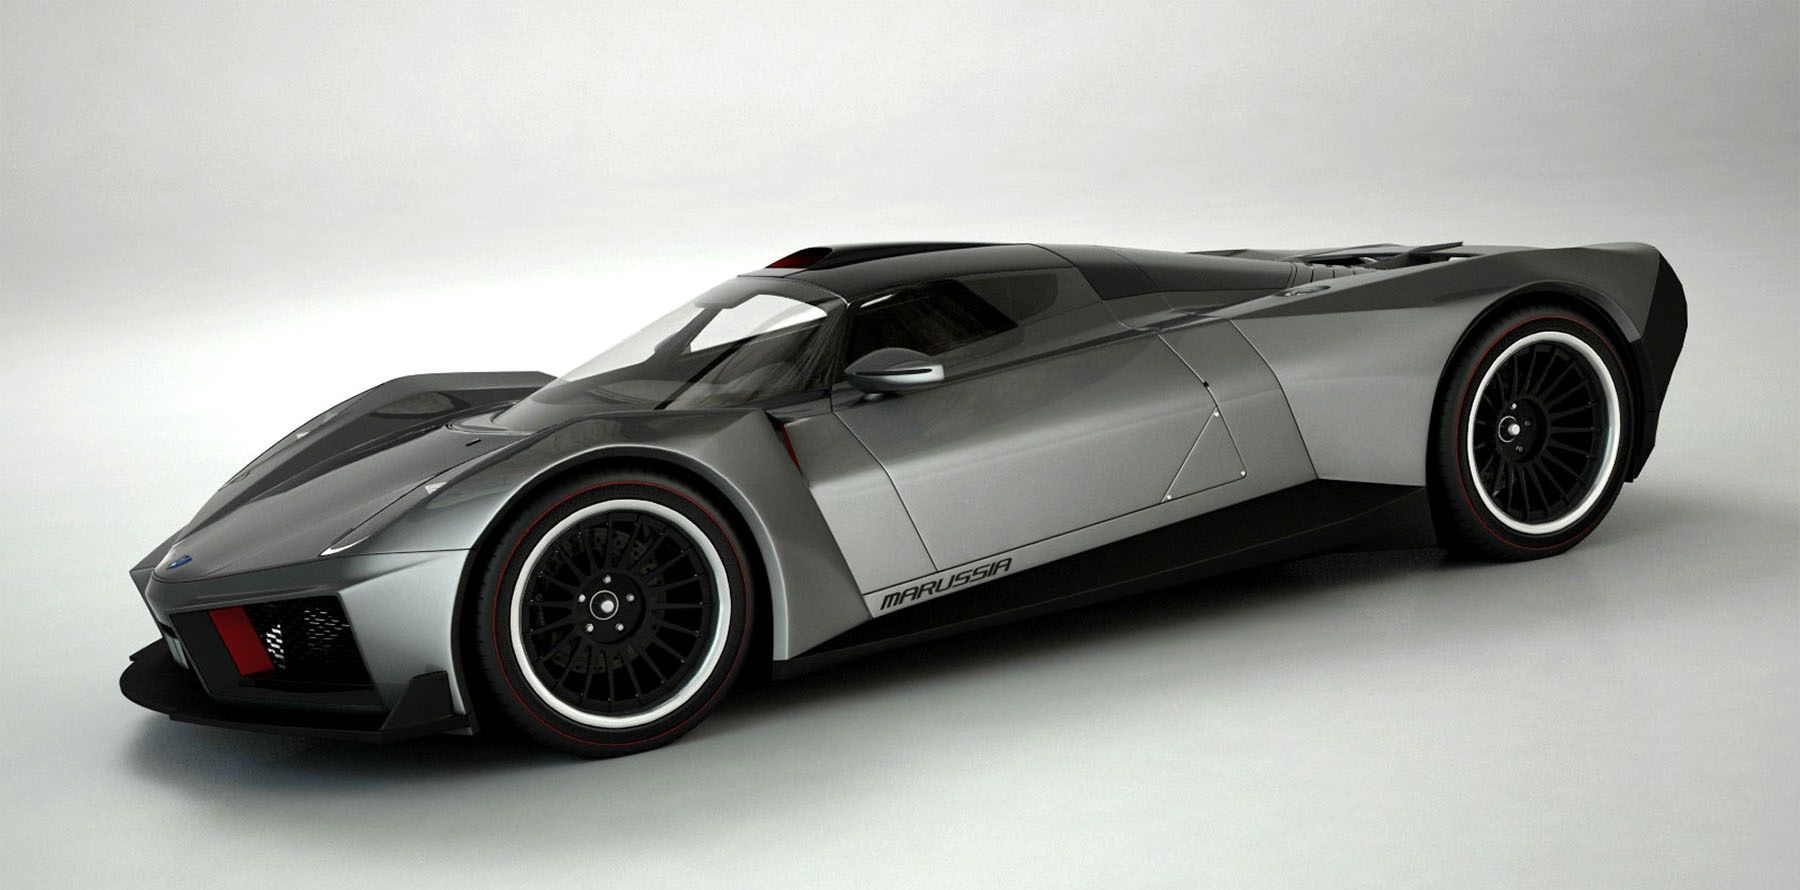 The Muska Concept Is It A Supercar Concept Or A Rocketmobile What You Get To Admire Right Now Is A Concept Car Signed By The Russ Super Cars Car Sports Cars